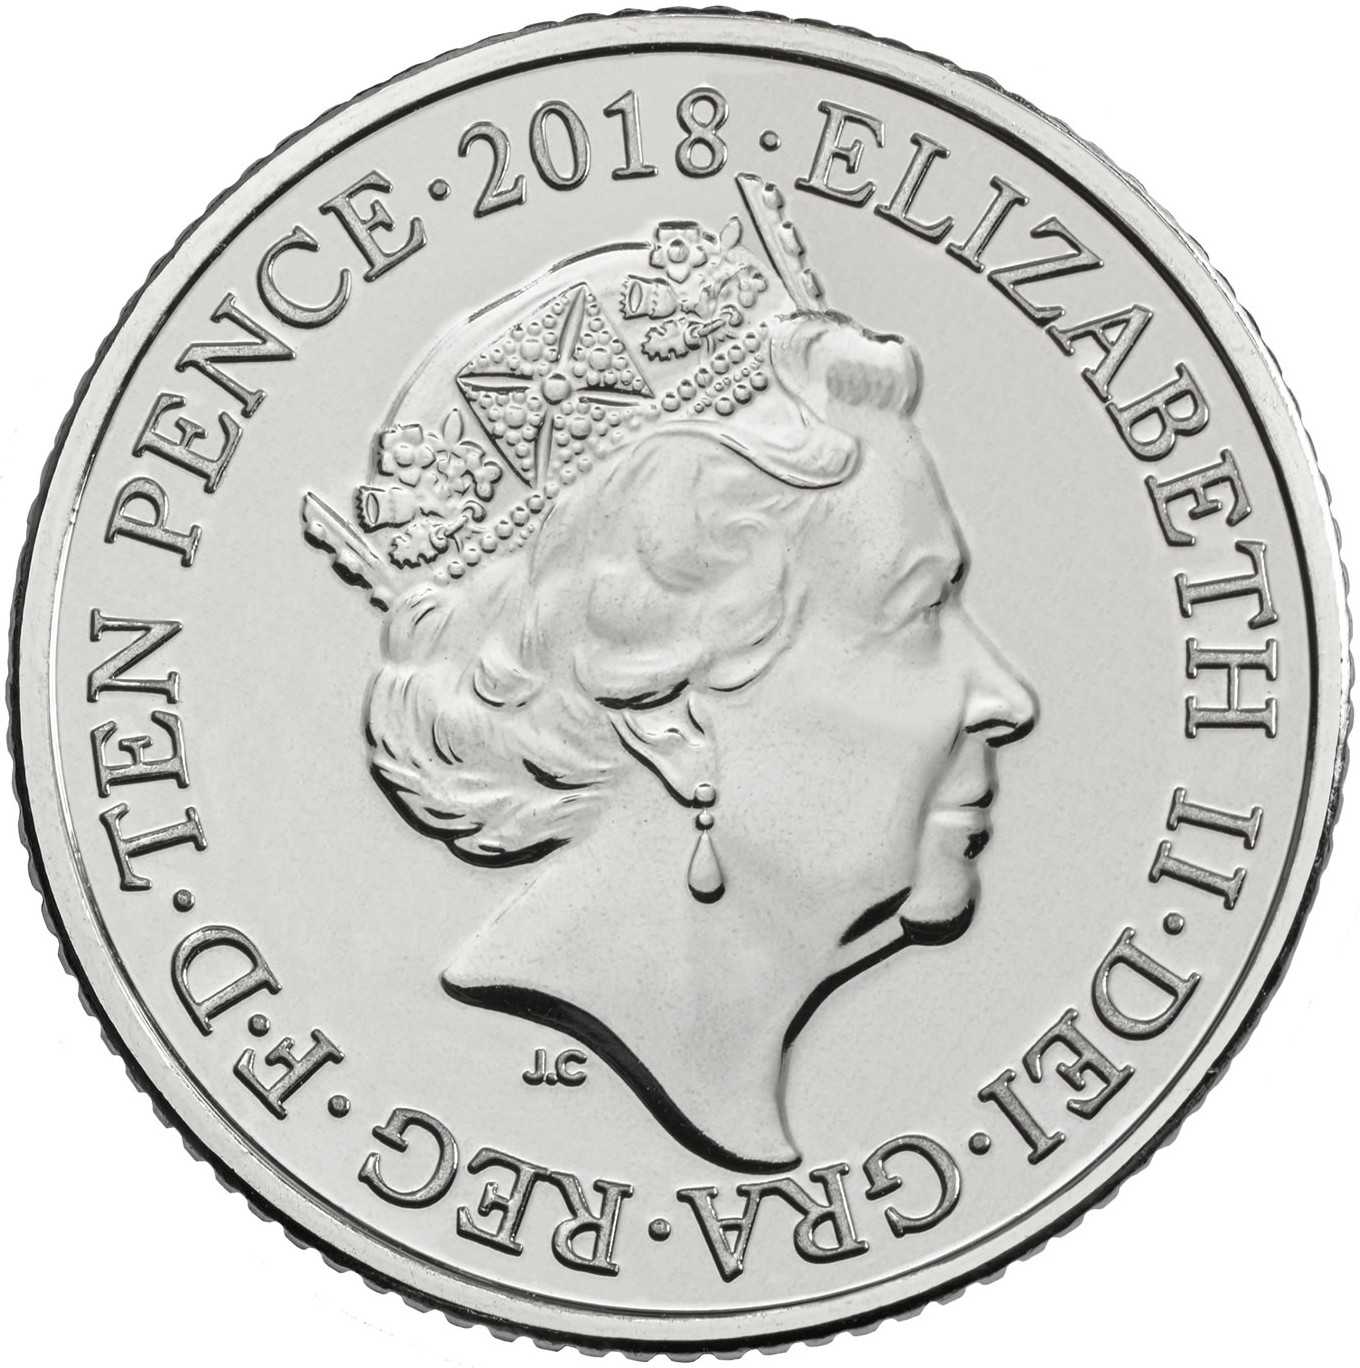 Ten Pence: Photo A - Angel of the North 2018 UK 10p Coin | The Royal Mint